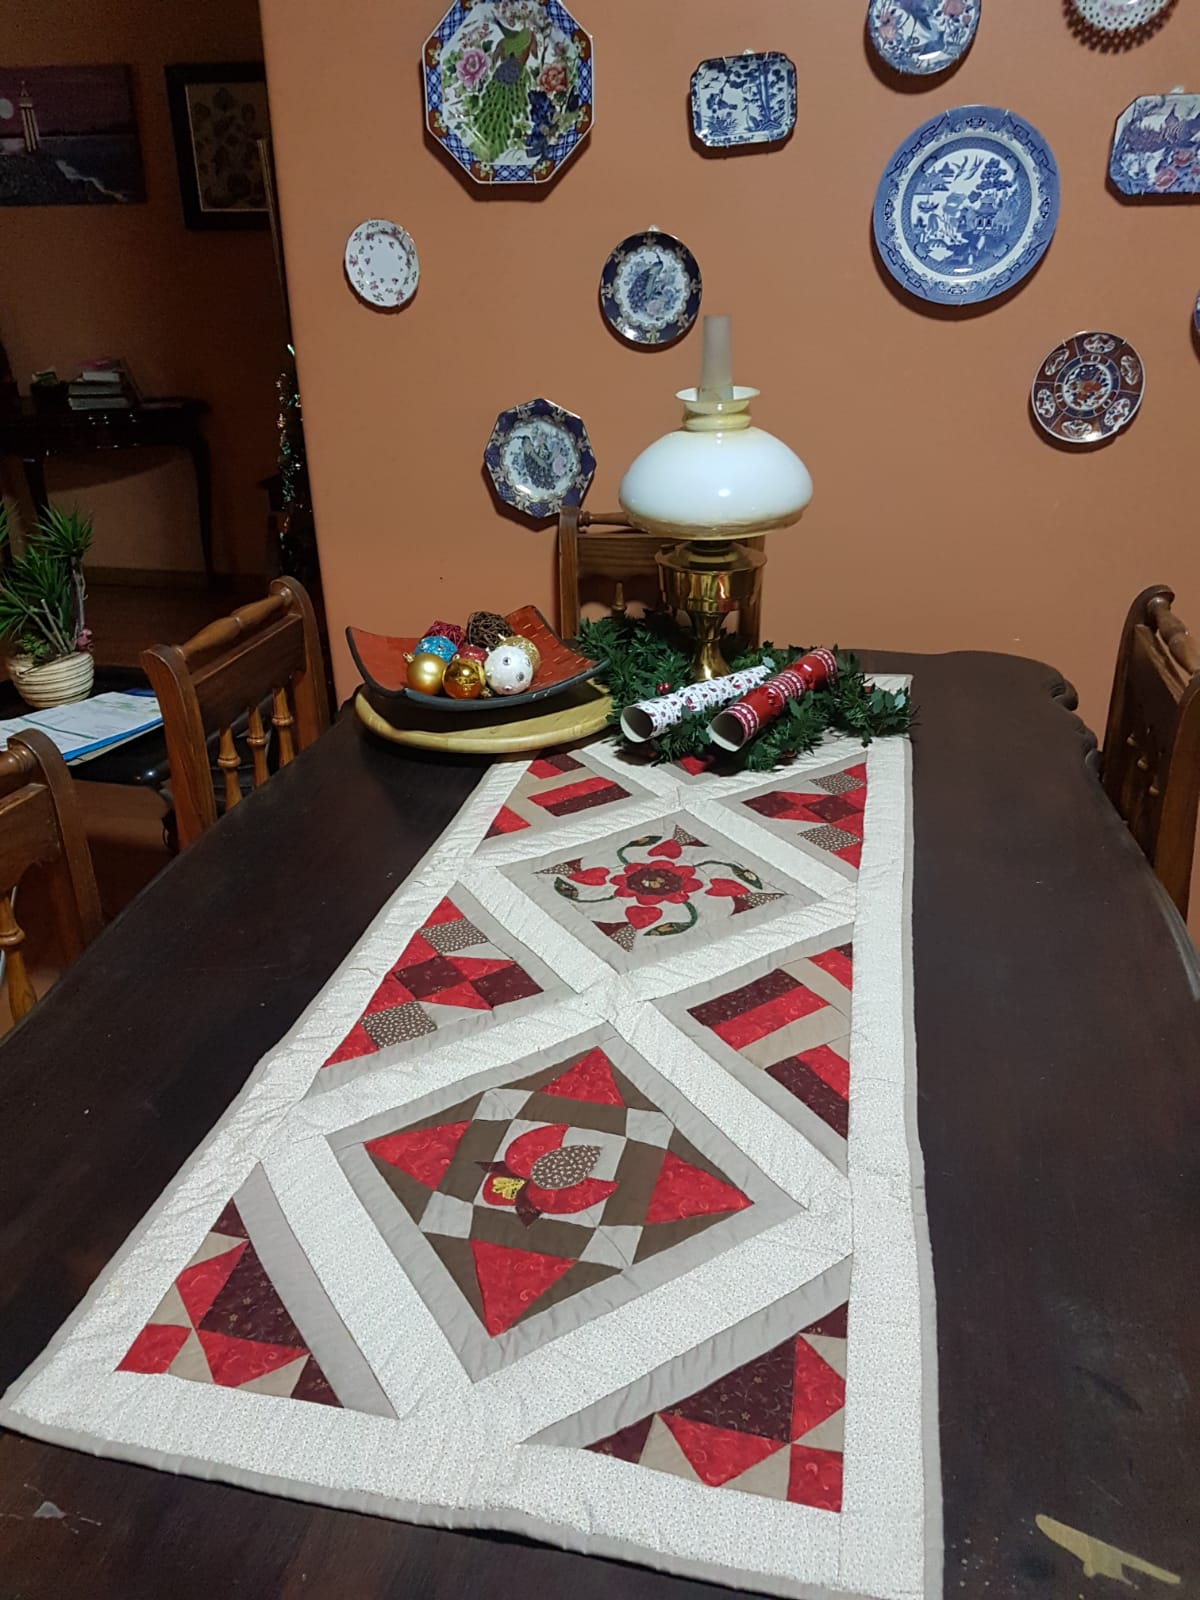 Table Runner made by Elsa Zontagh